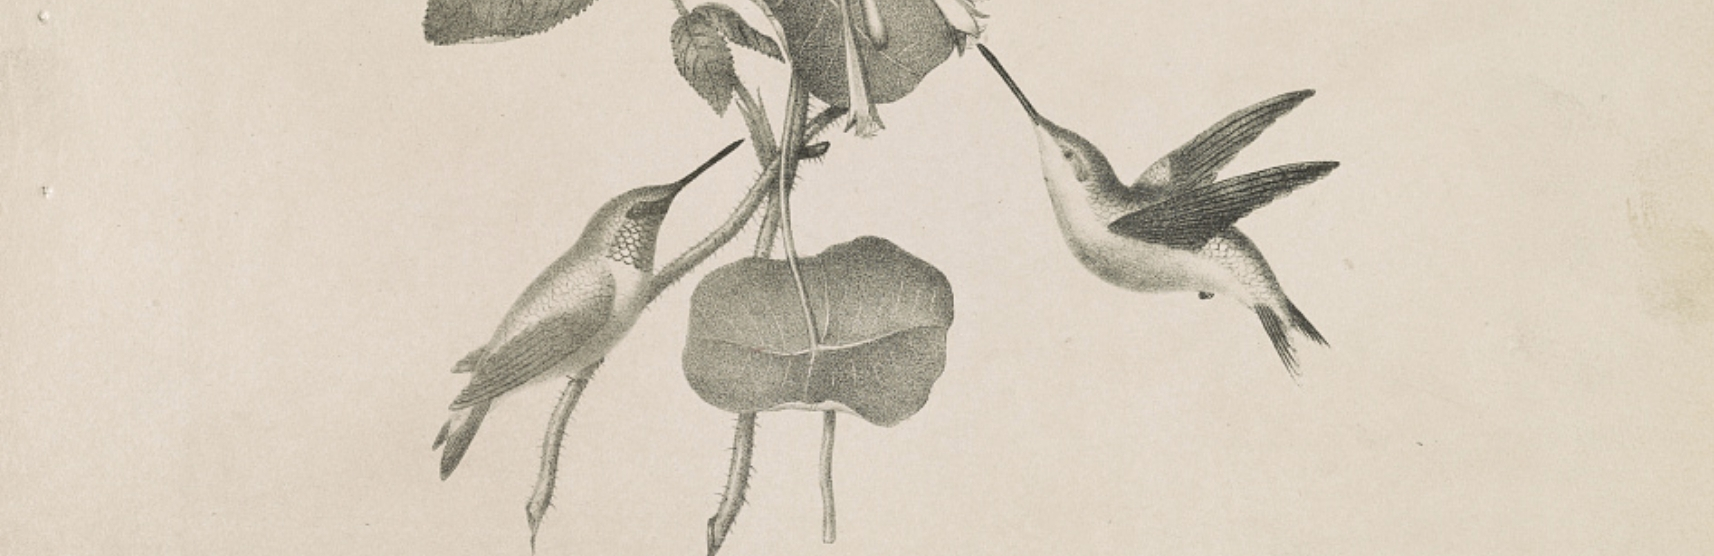 Humming birds / from life & on stone by M.E.D. Brown ; his lith. No. 5 Library St. Phila. via LOC